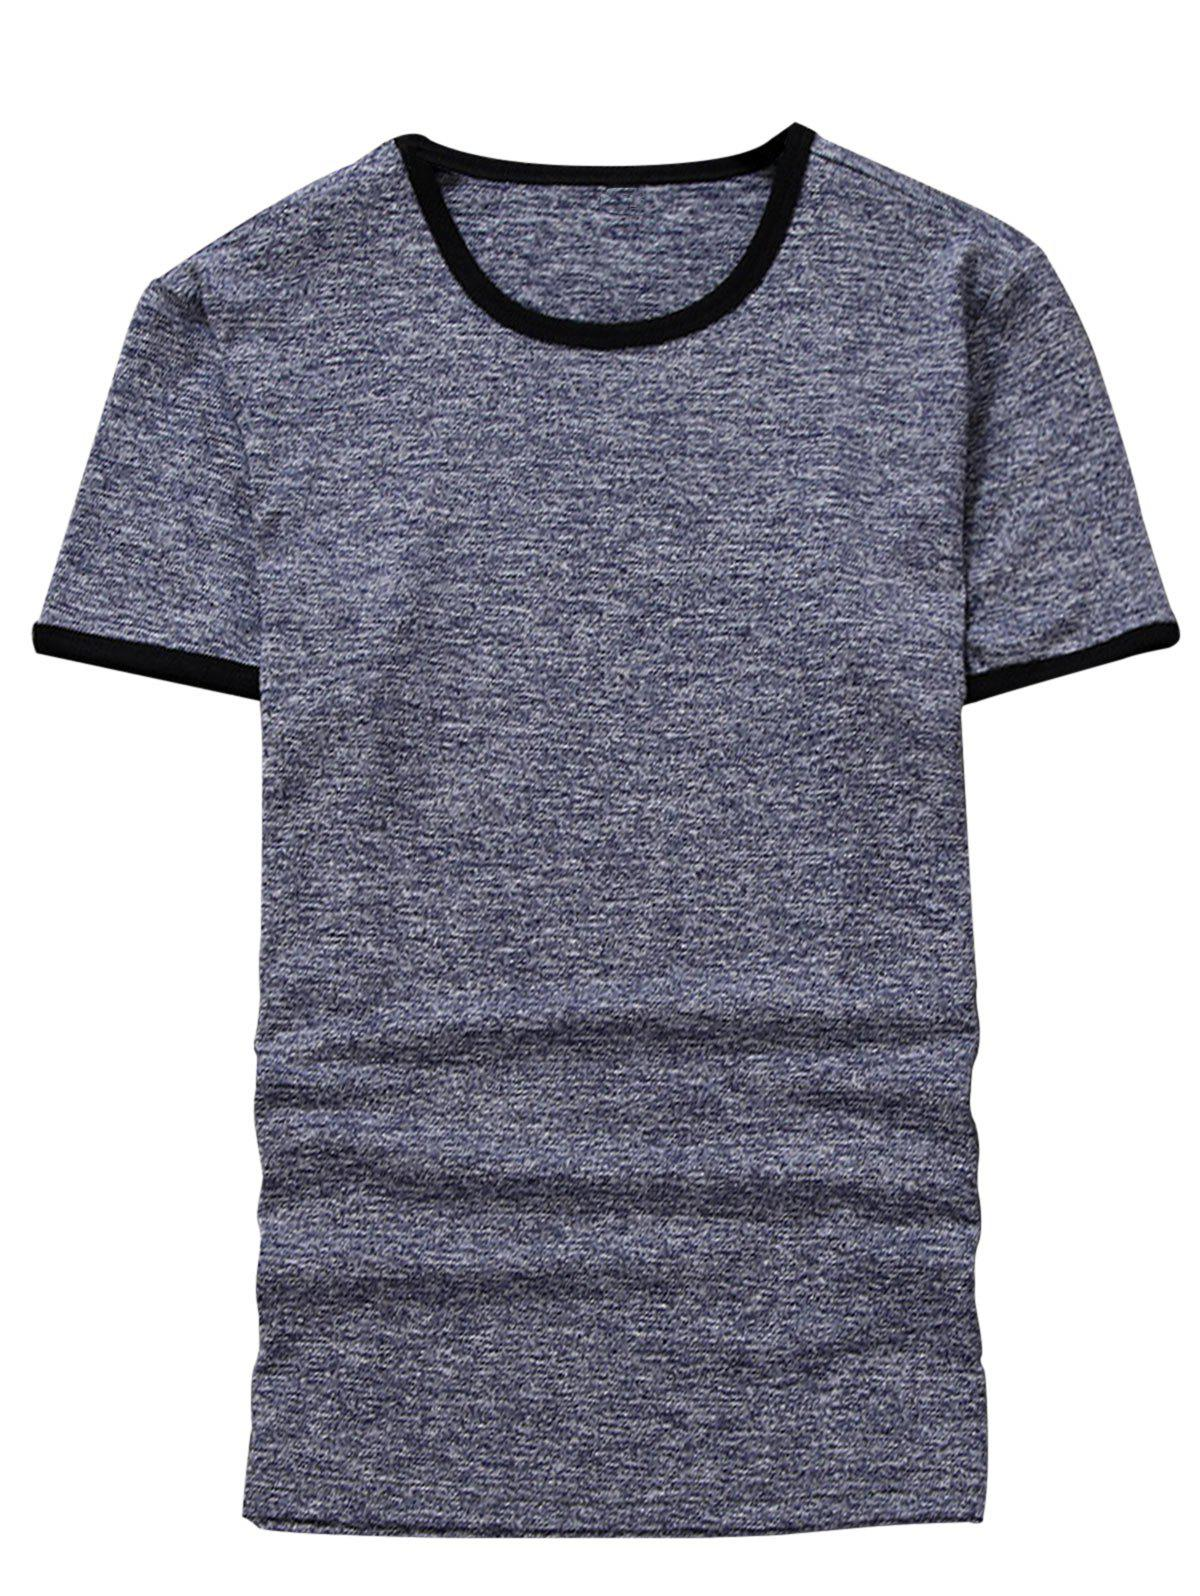 Space Dyed Ringer T-Shirt - BLUE GRAY 3XL